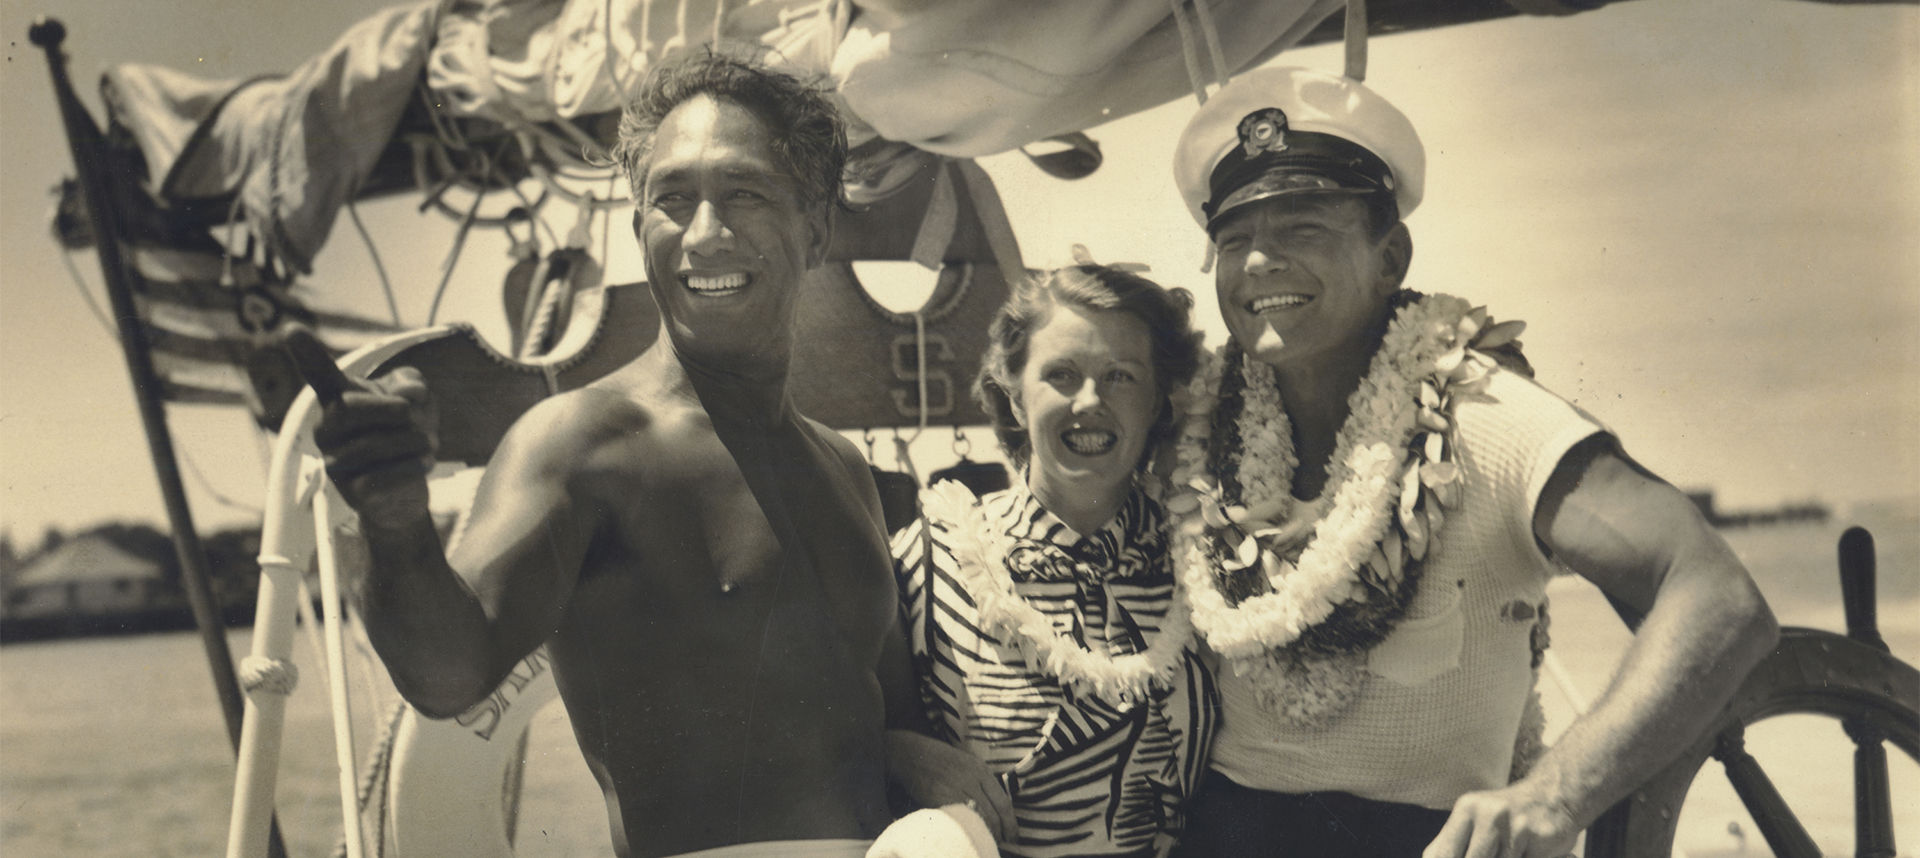 Duke on a boat with happy couple